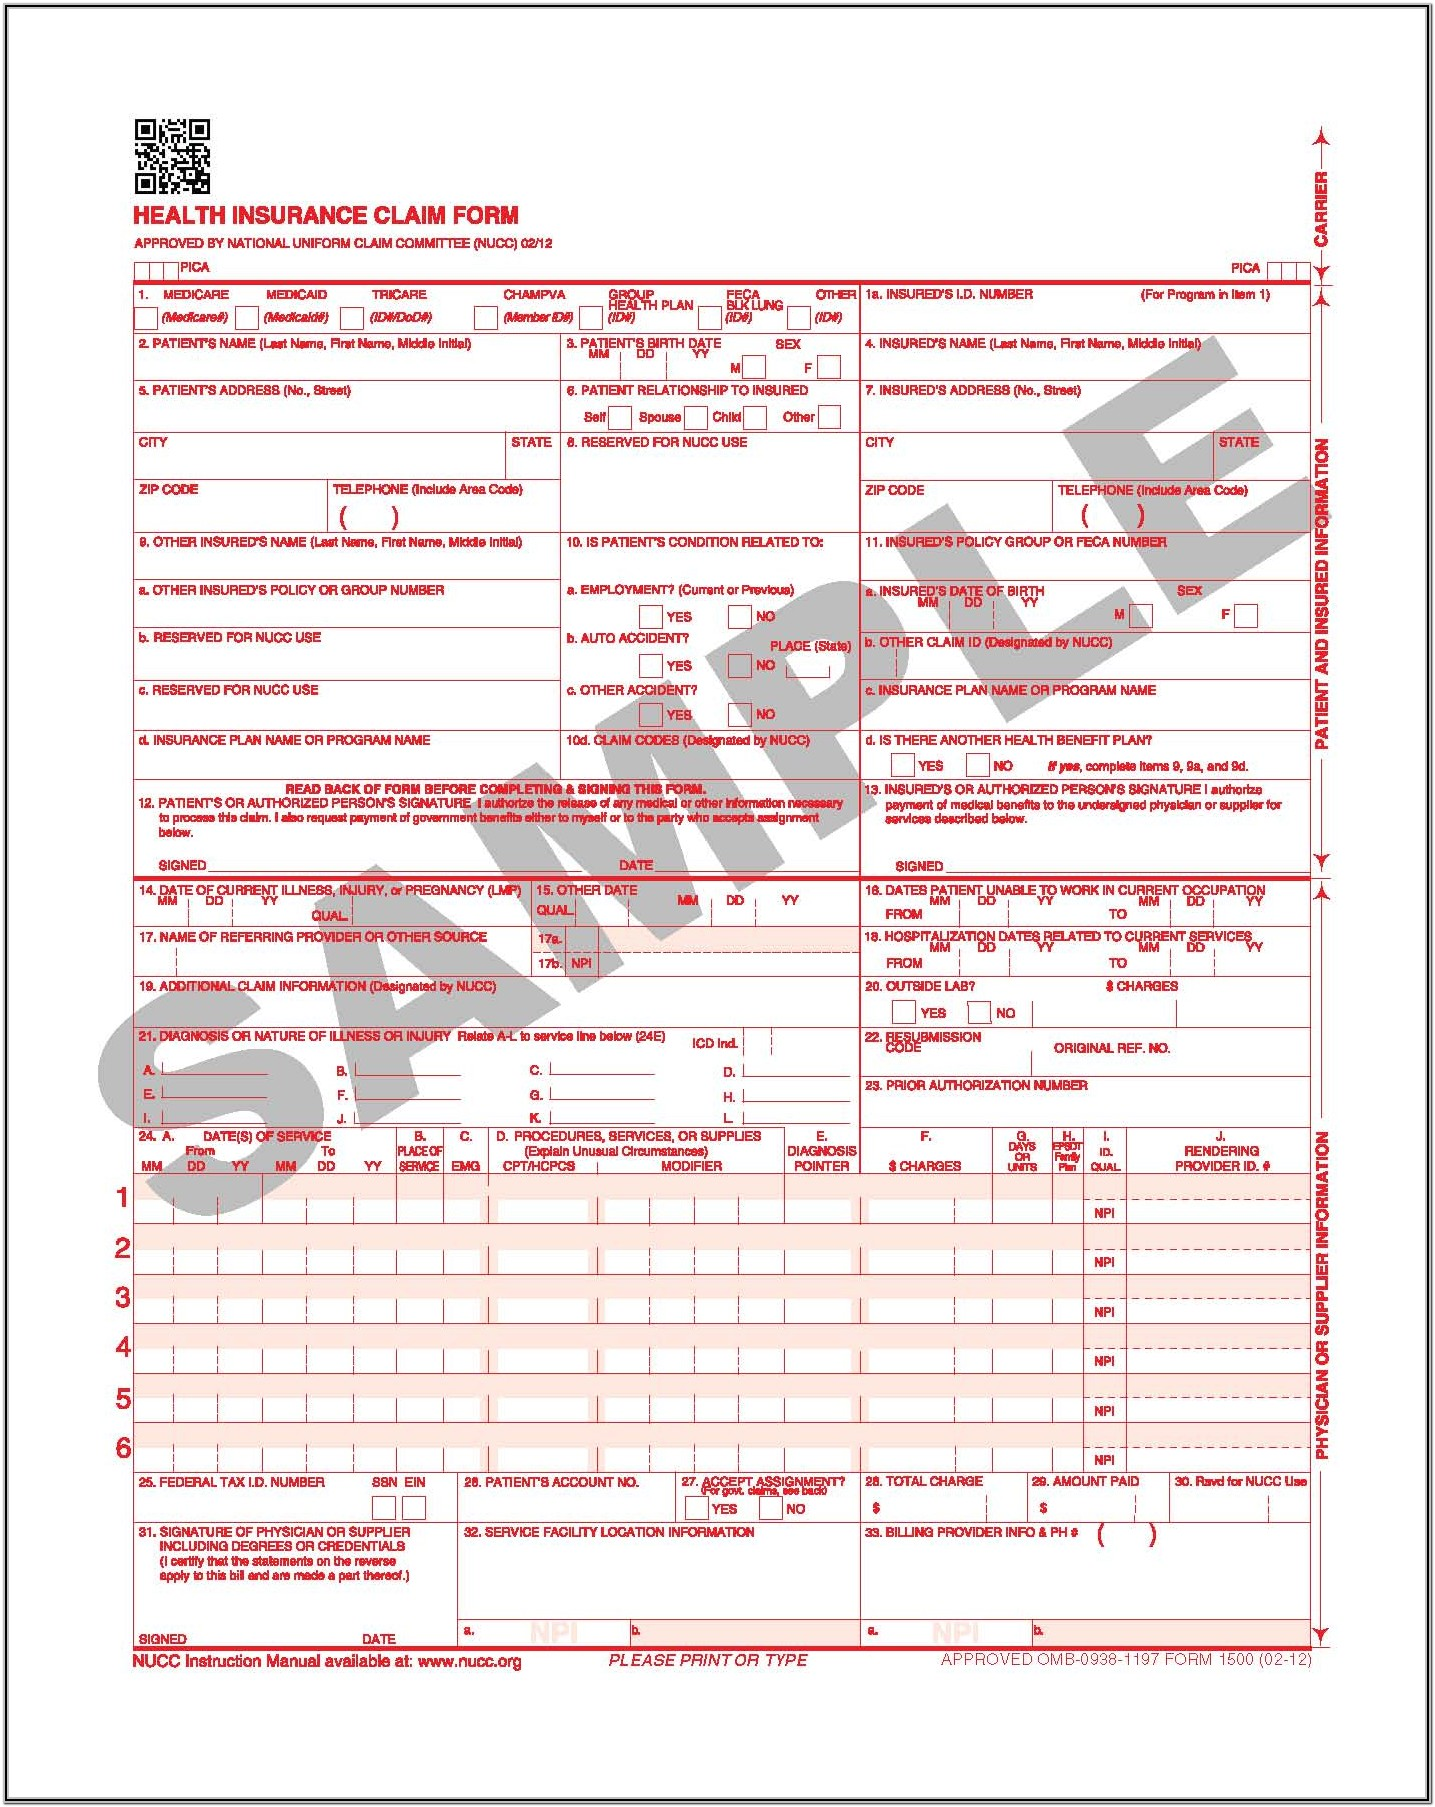 Medicare Claim Form 1500 Instructions